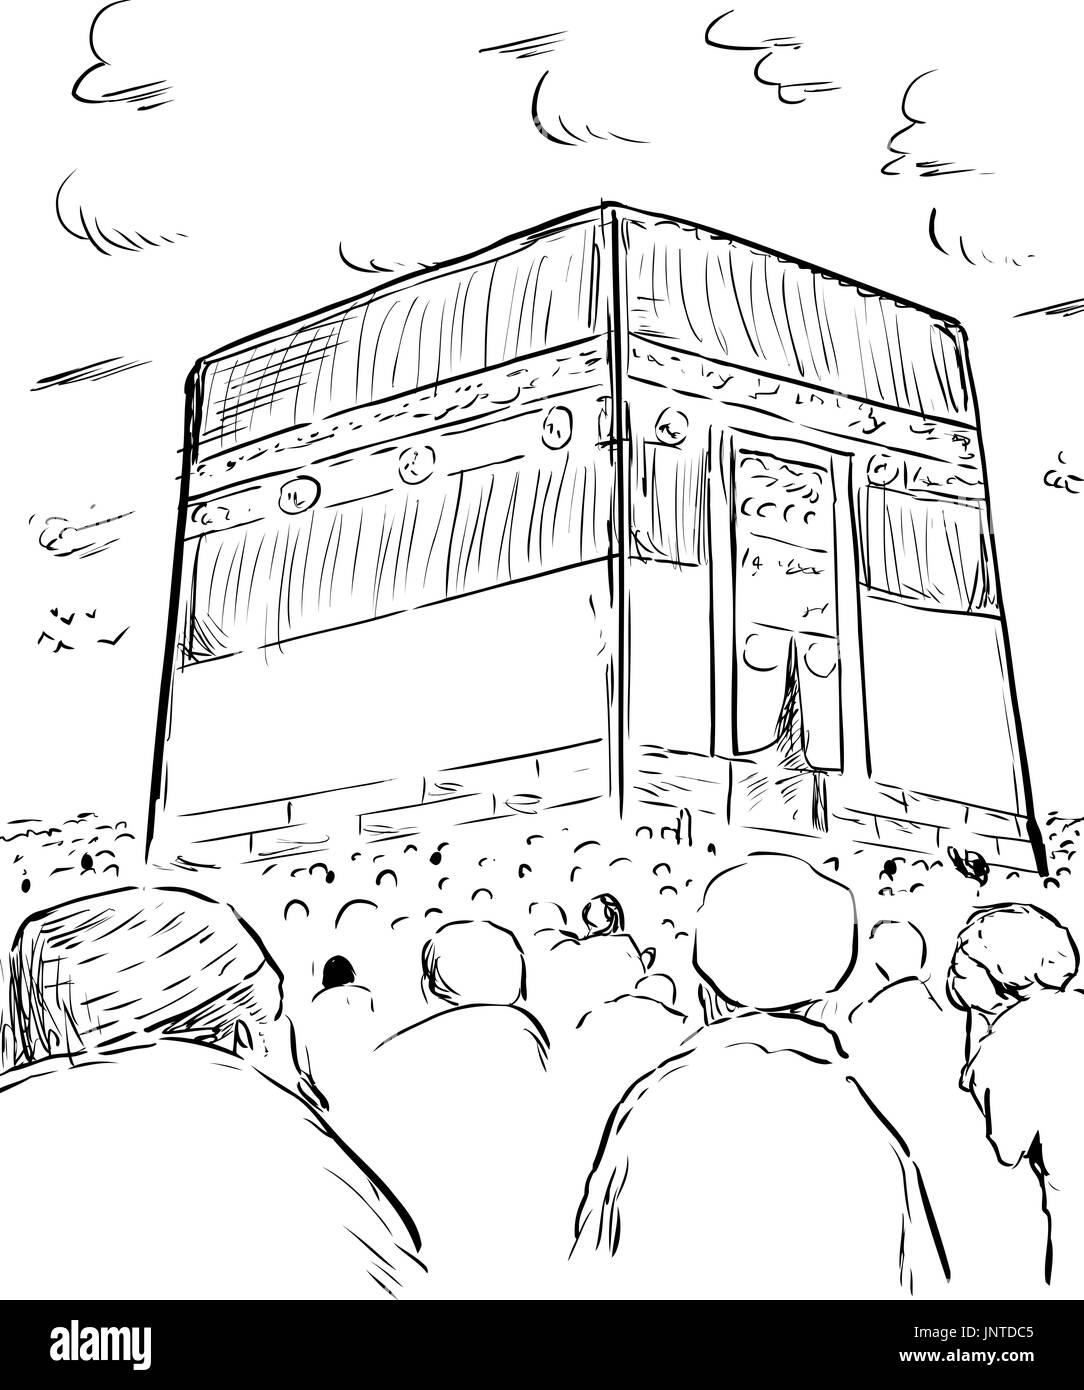 It's just an image of Exhilarating Holy Kaba Coloring Page